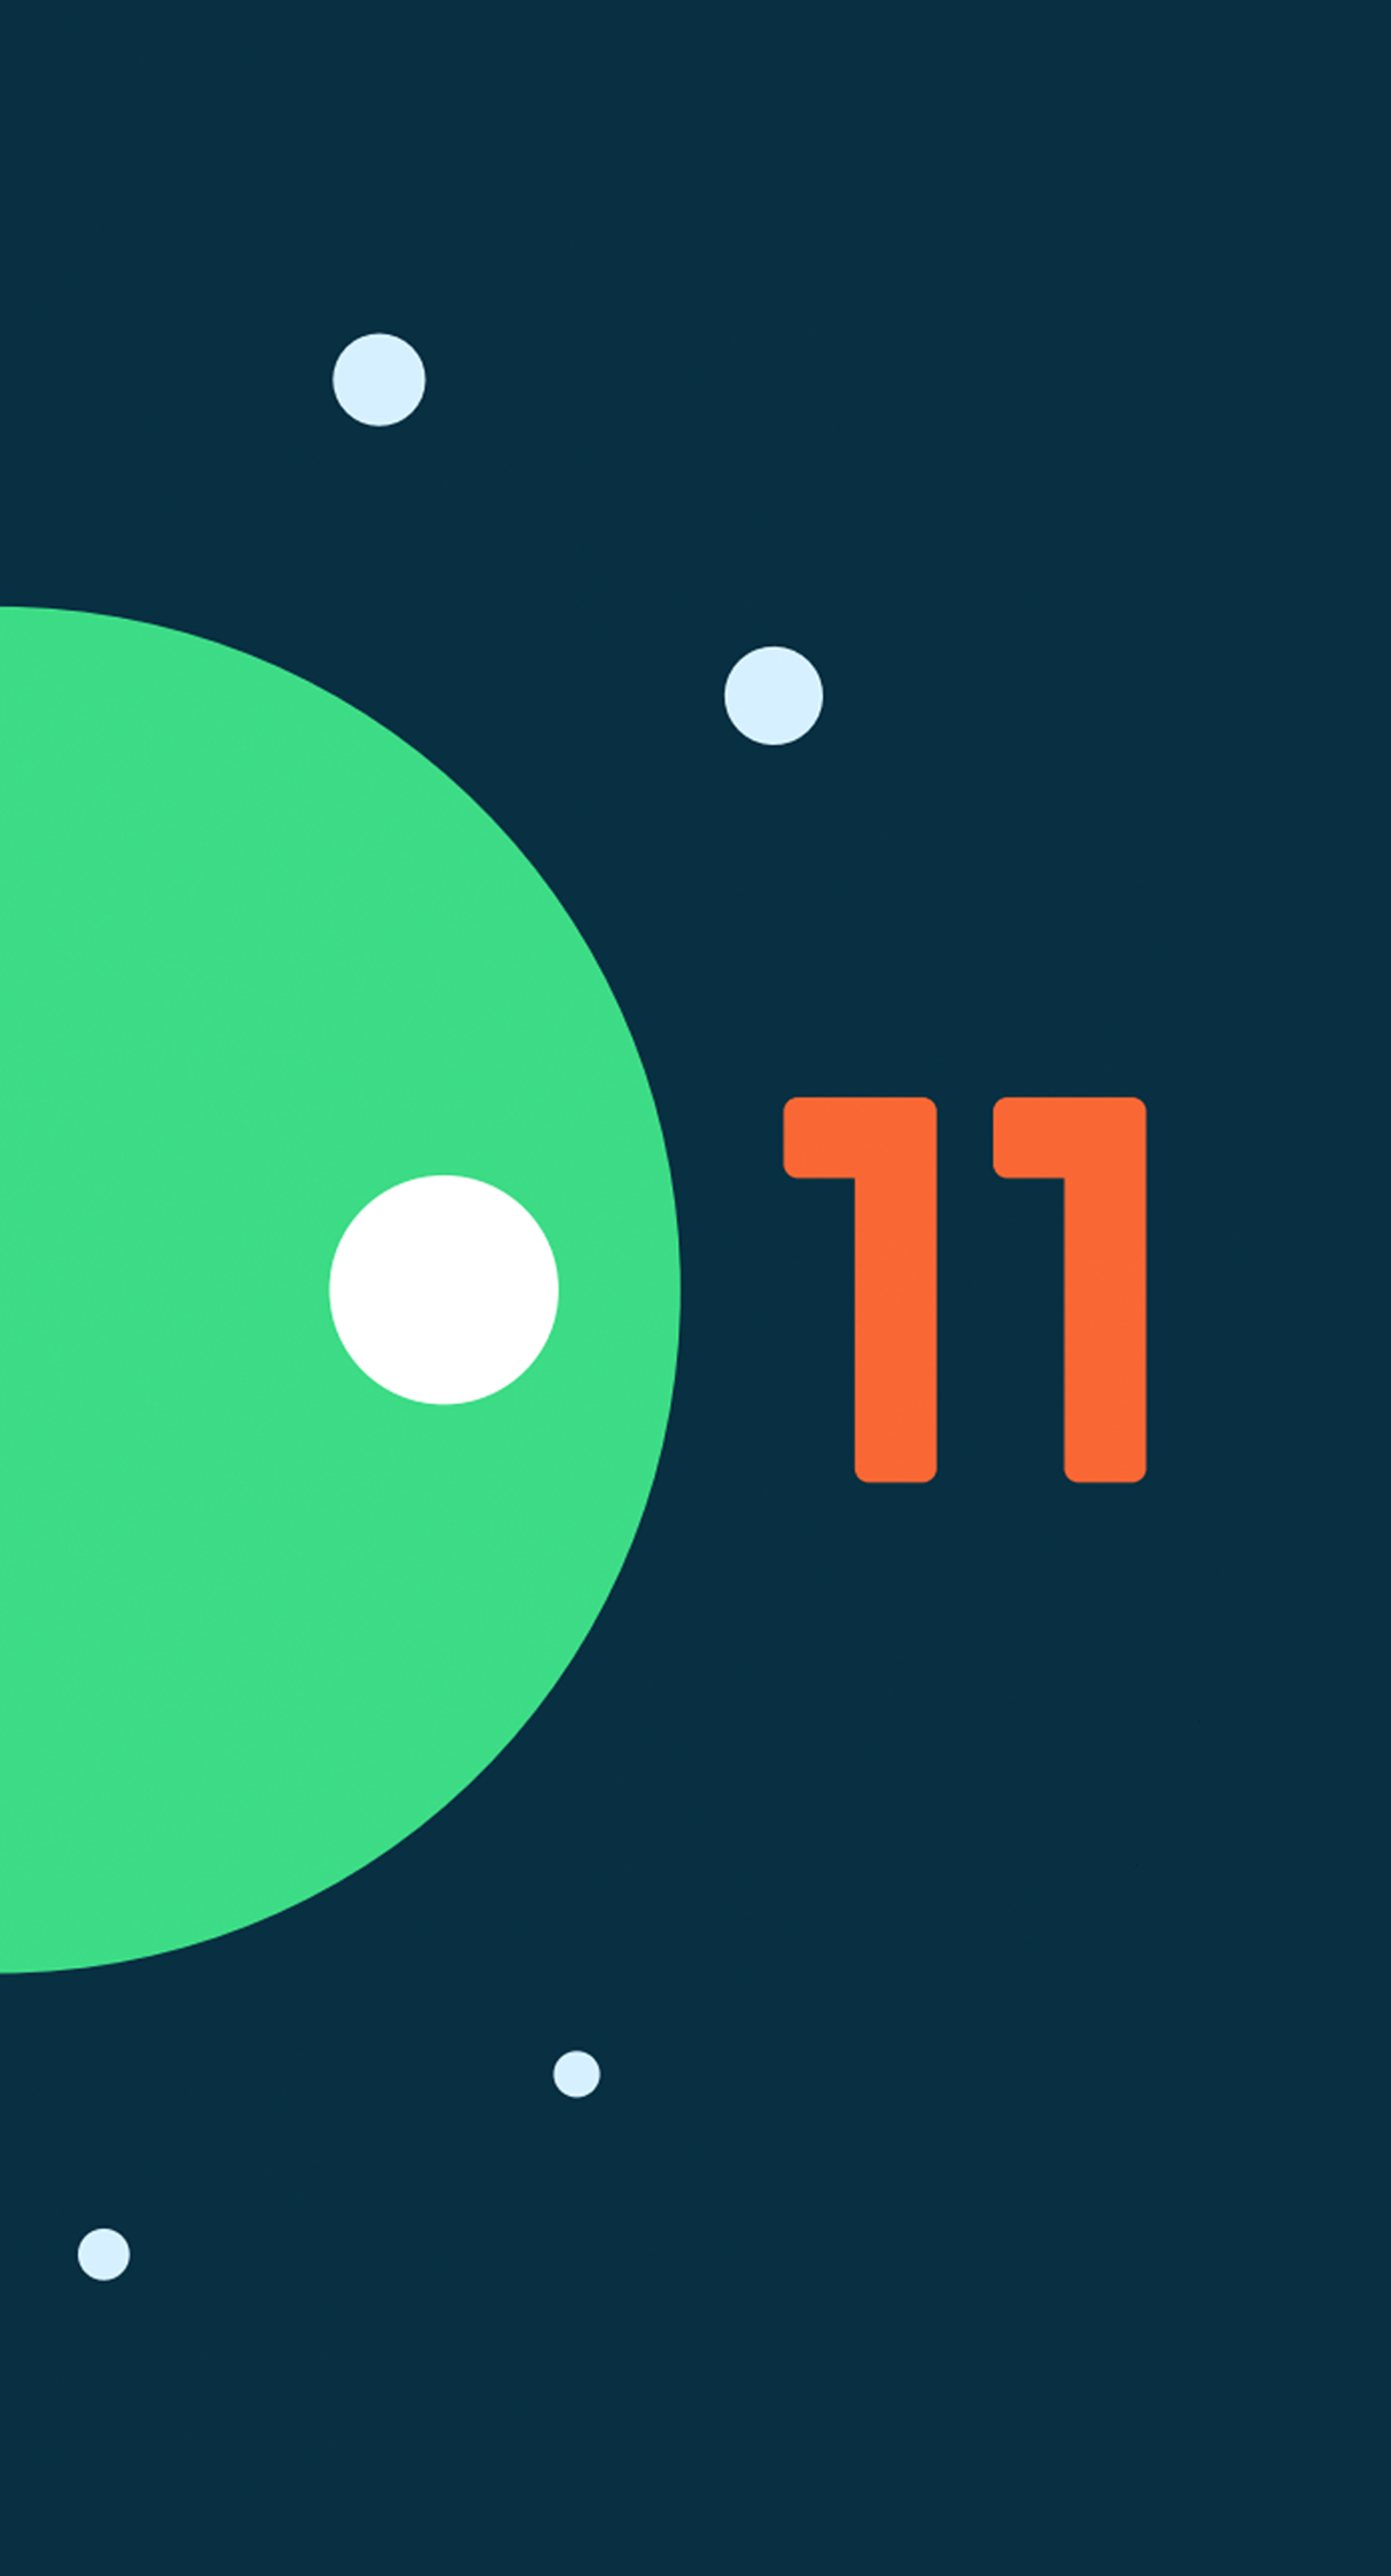 android-11-logo-large-navy.png